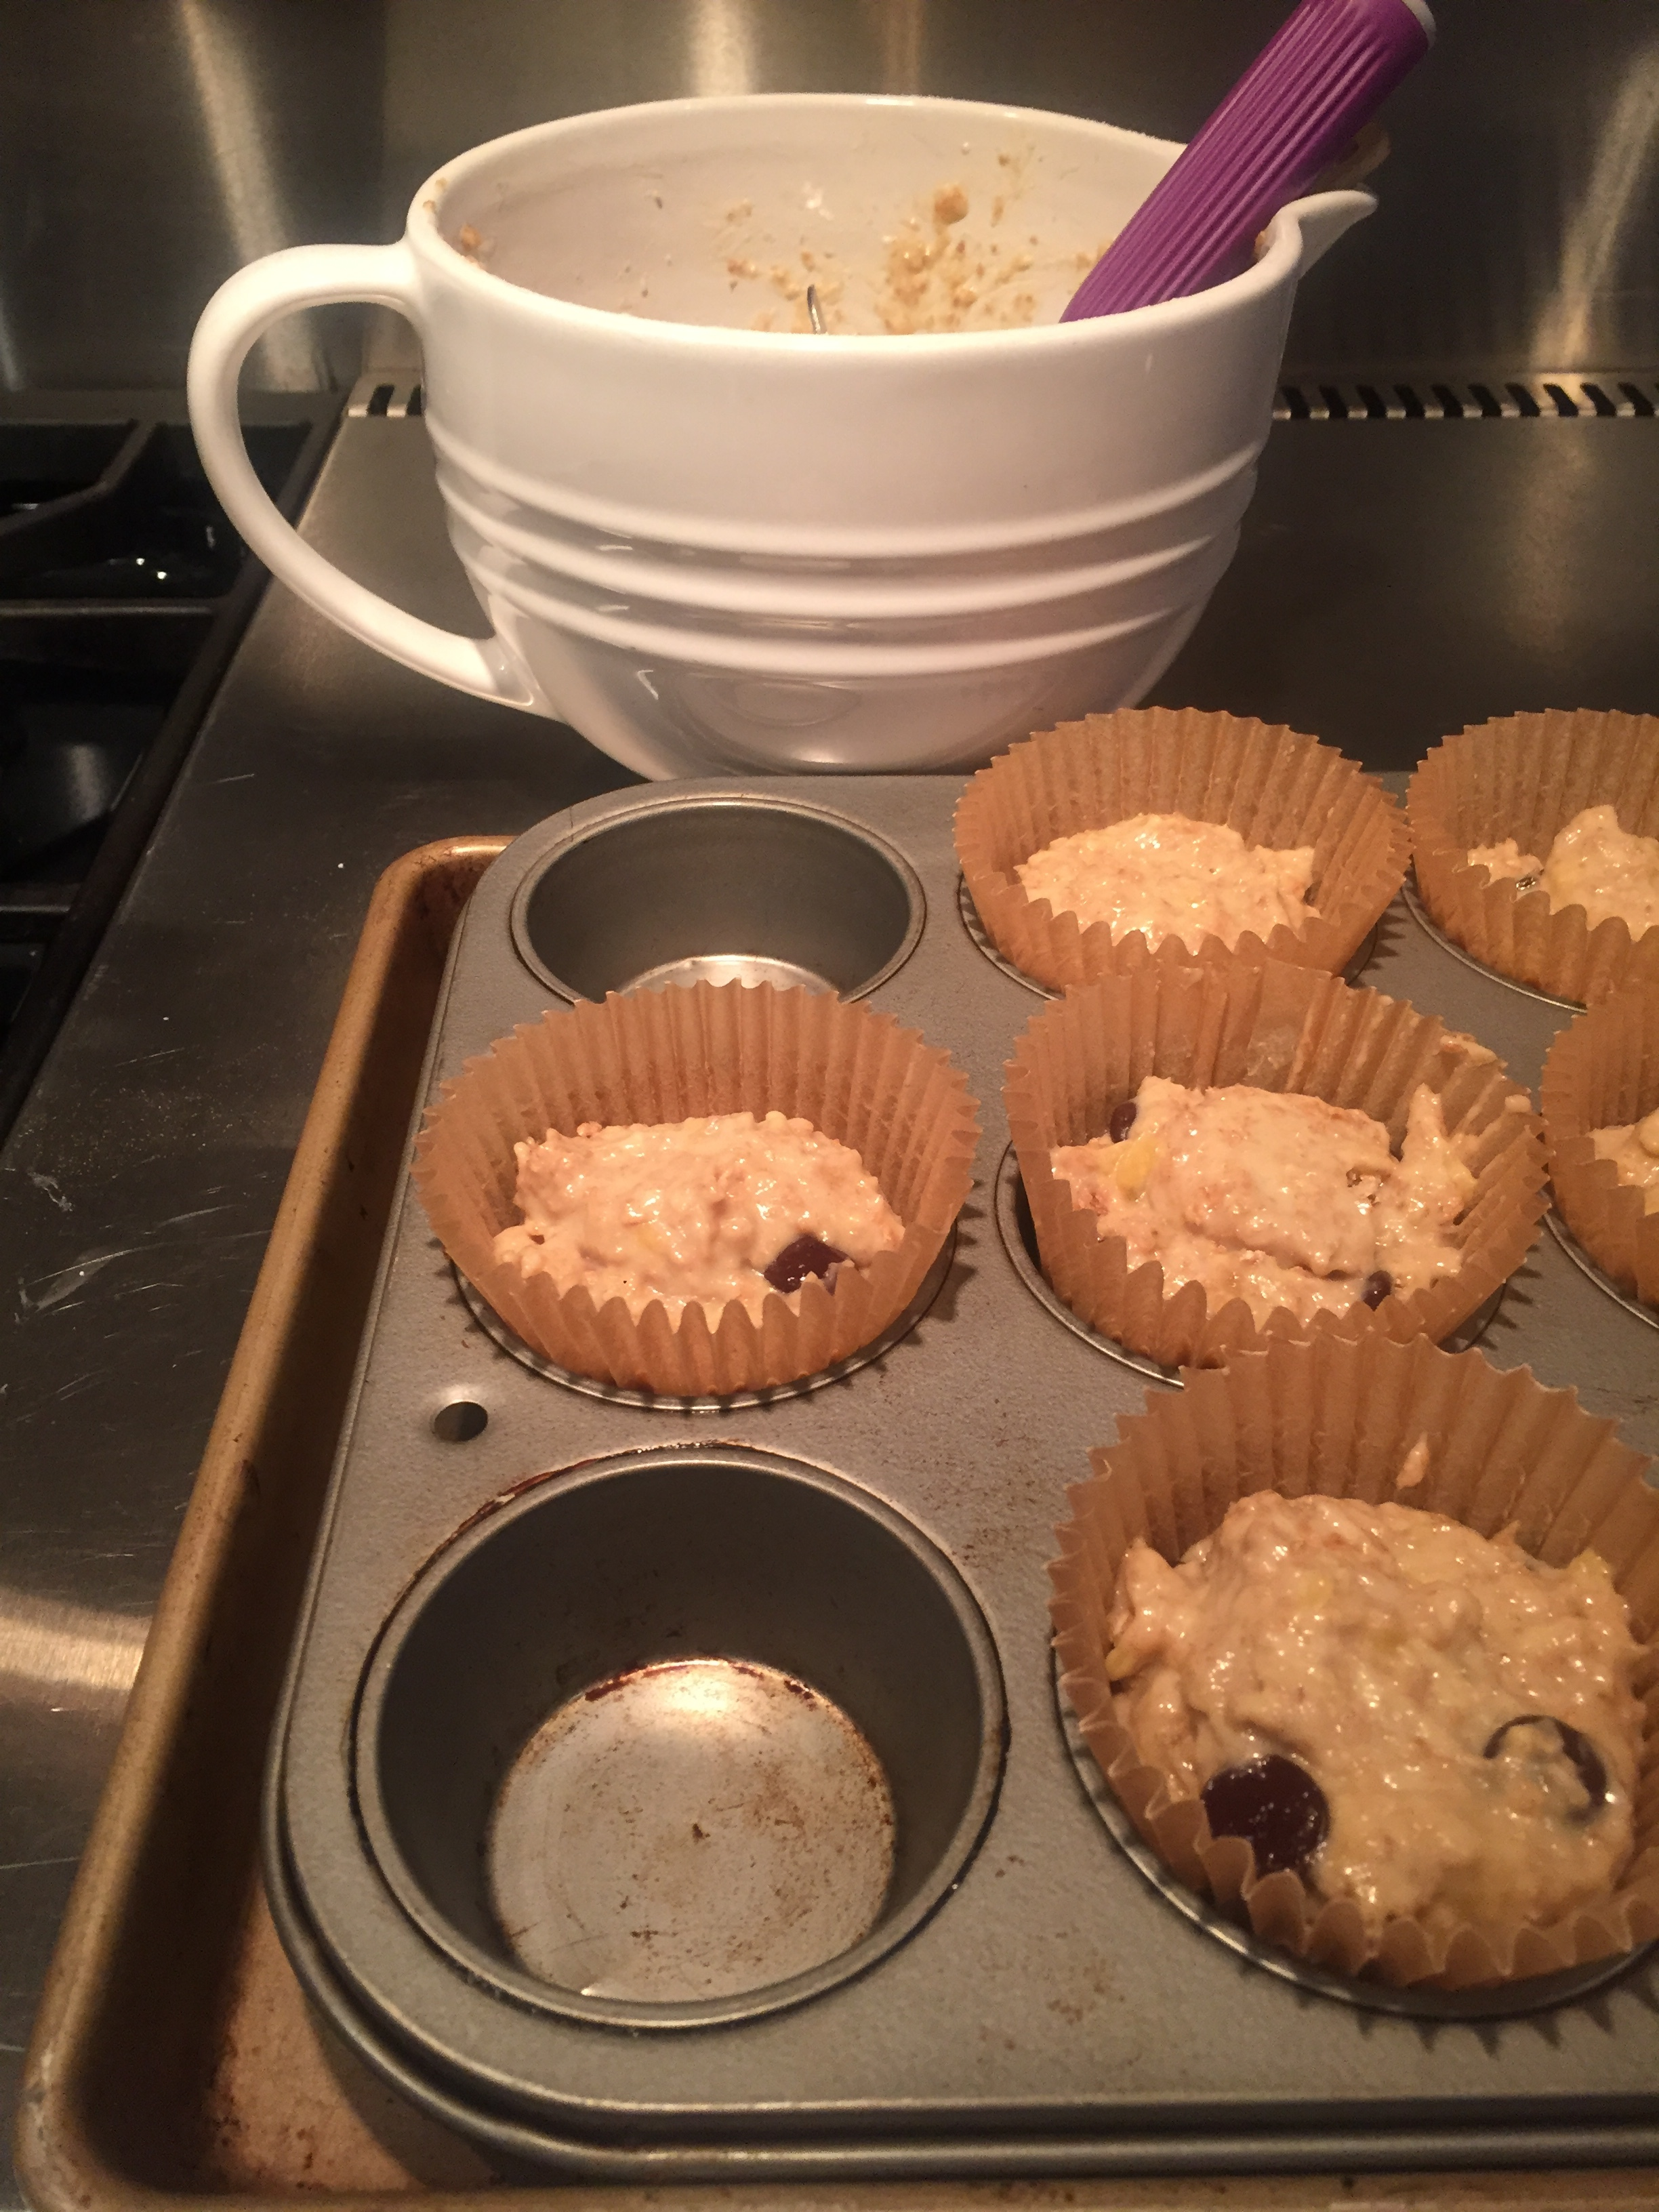 TIP: If you find your muffins burn on the bottoms, place a baking sheet under your muffin tin.